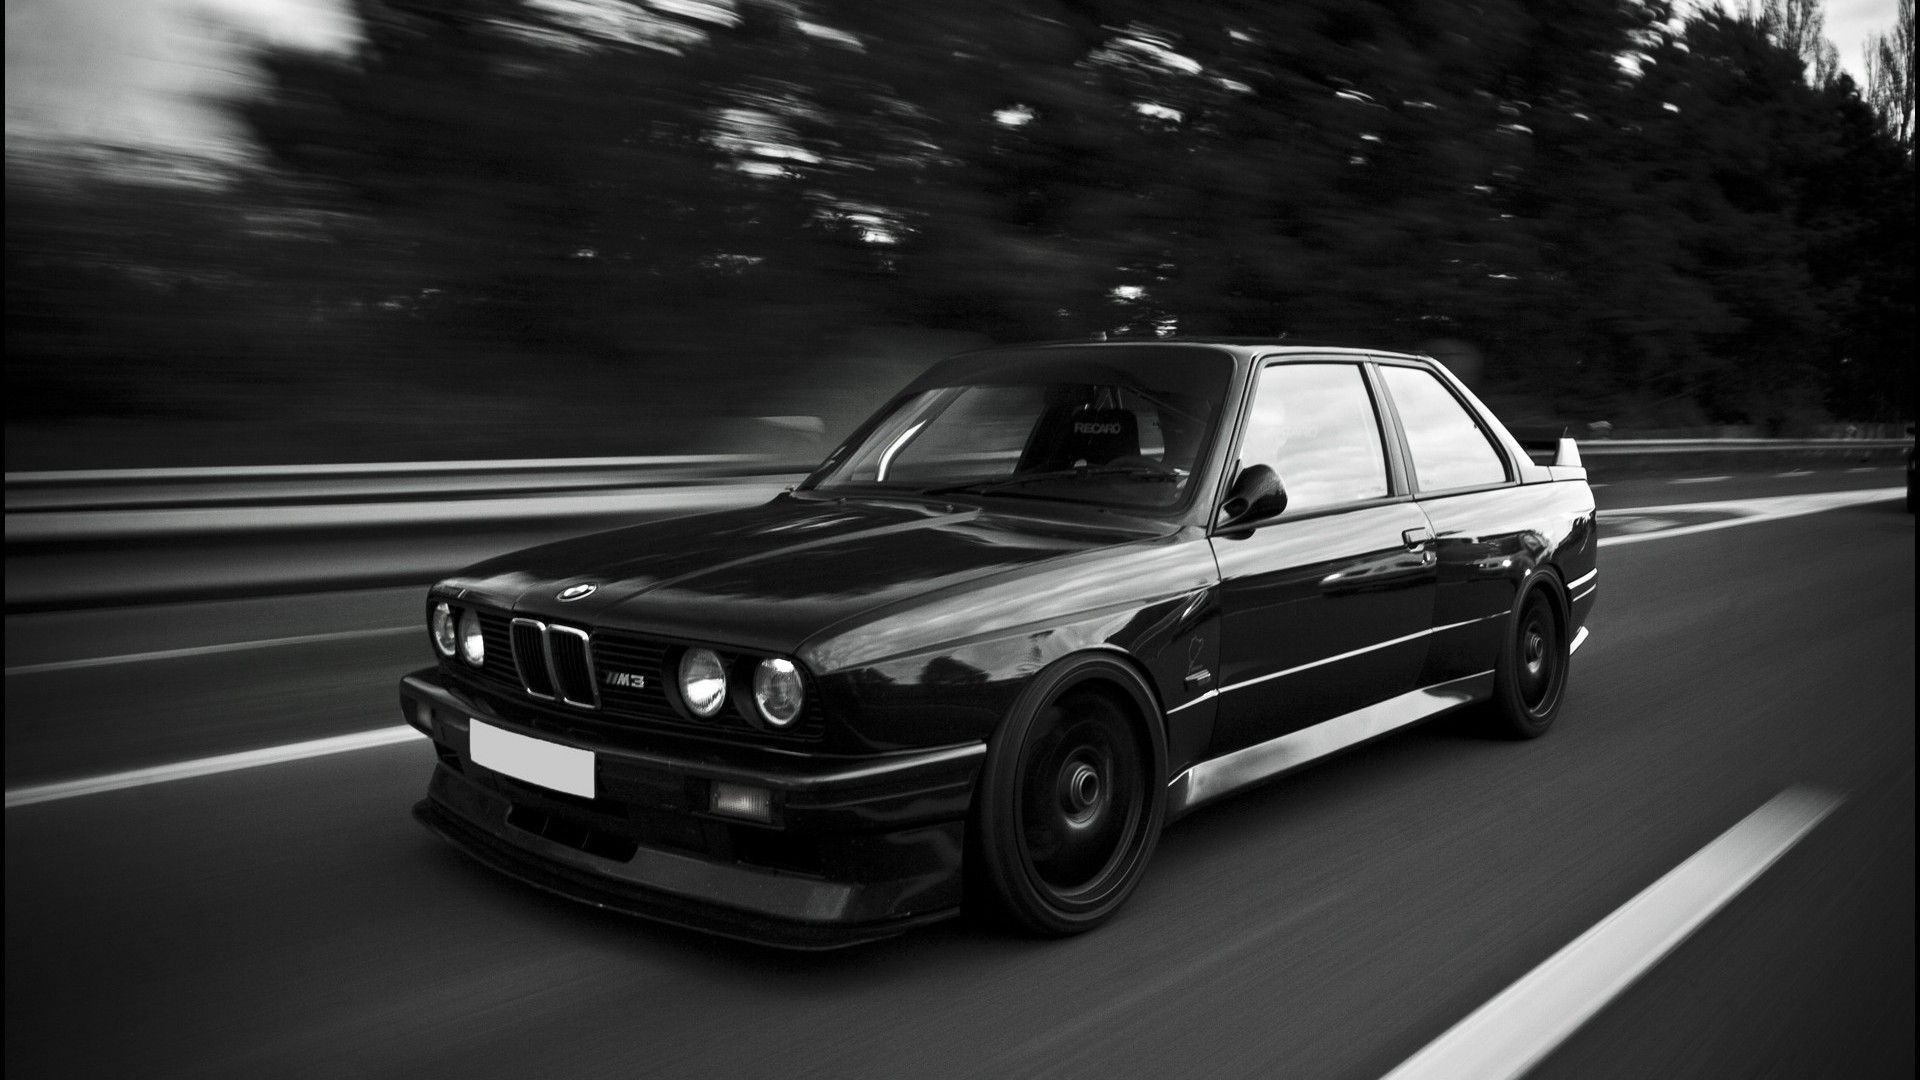 Car Wallpapers For Macbook Pro Bmw E30 Wallpaper 04 1920x1080